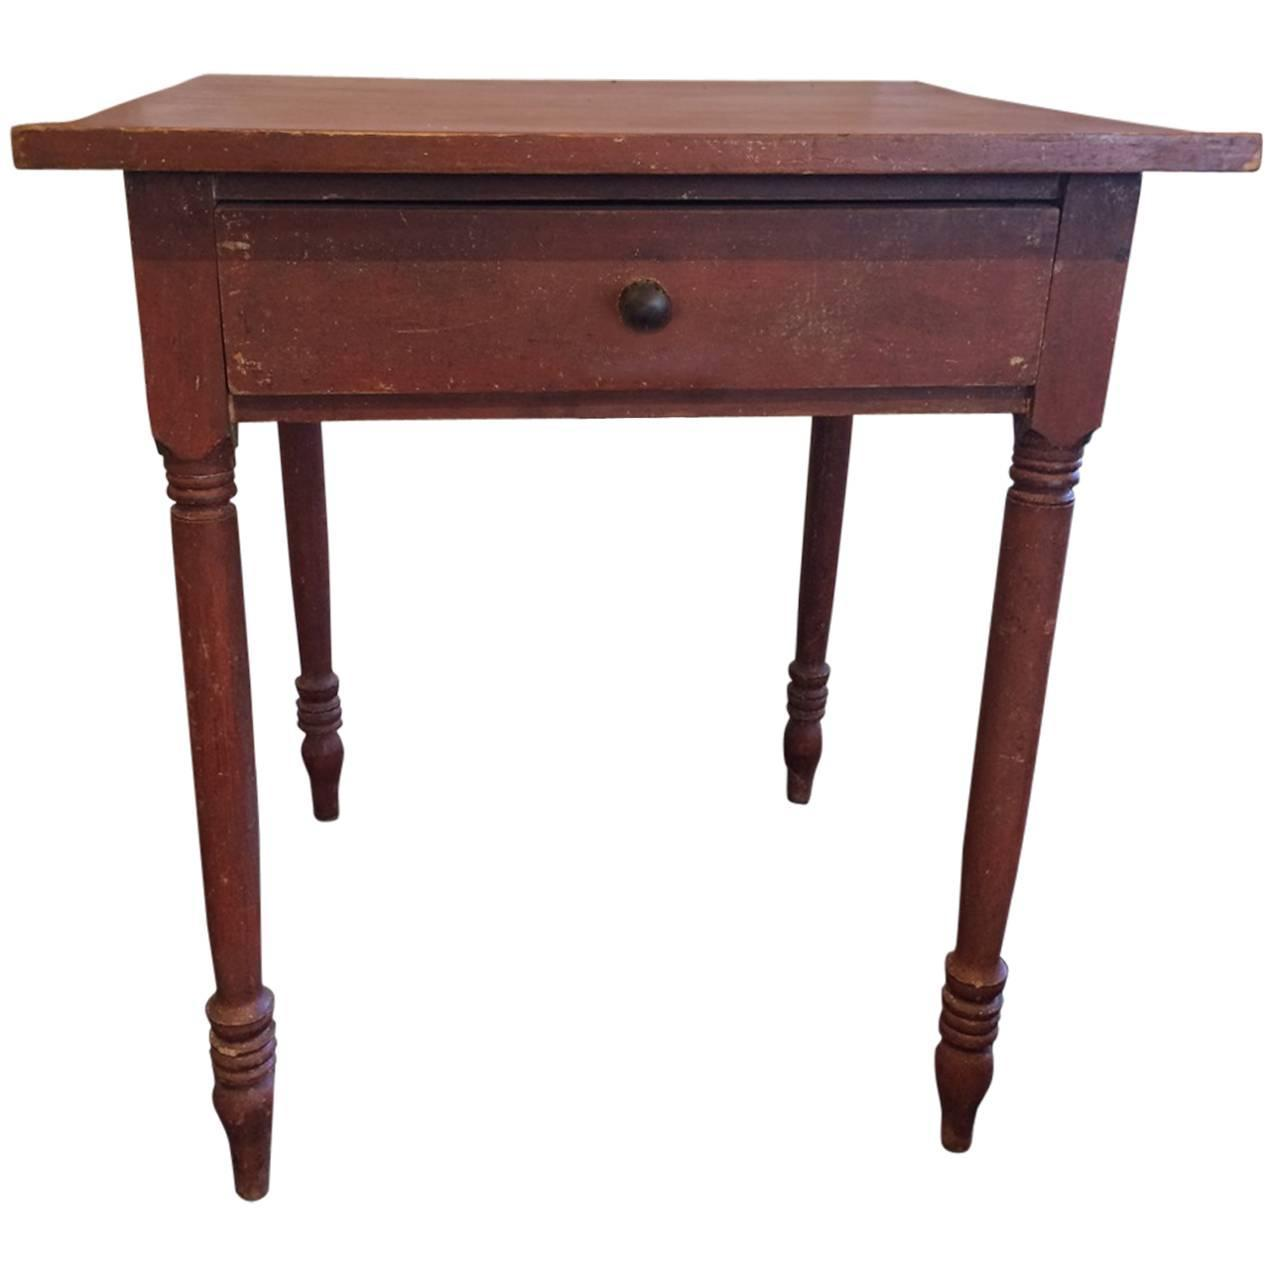 Antique red painted side table at 1stdibs for Red side table